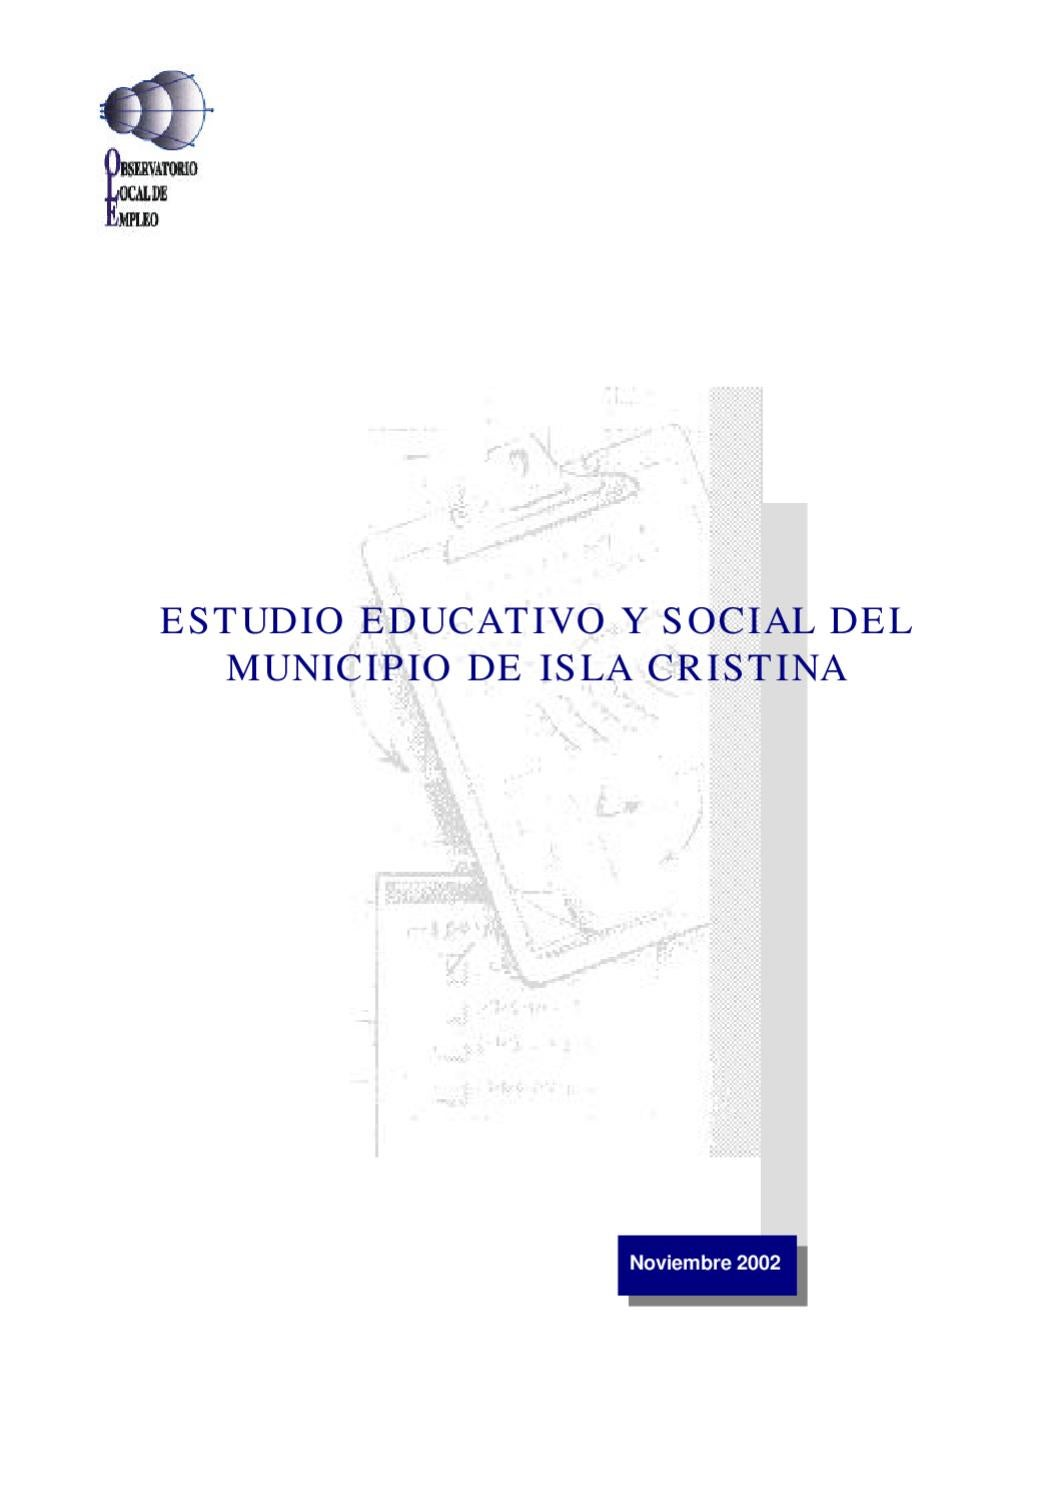 Estudio educativo y social del municipio de Isla Cristina by C3IT ...